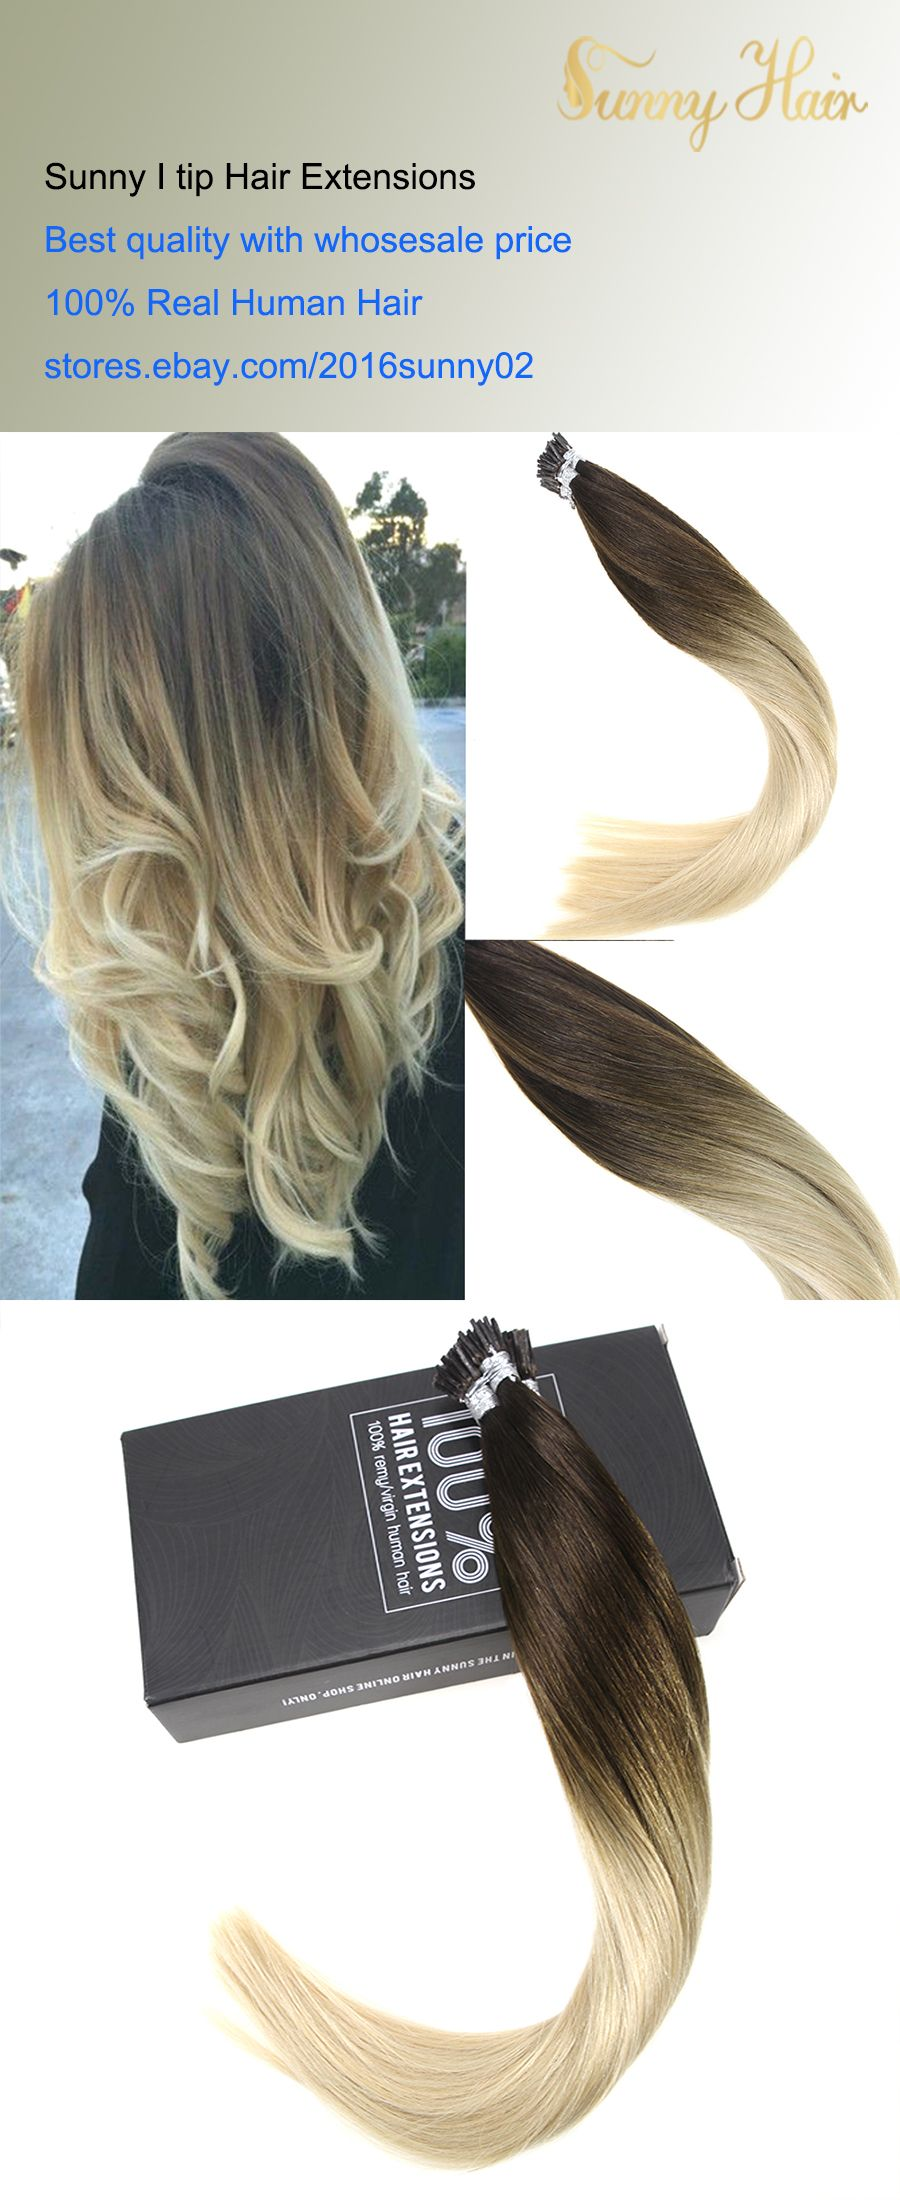 Sunny 25g Keratin I Tip Human Hair Extensions Remy Human Brown To